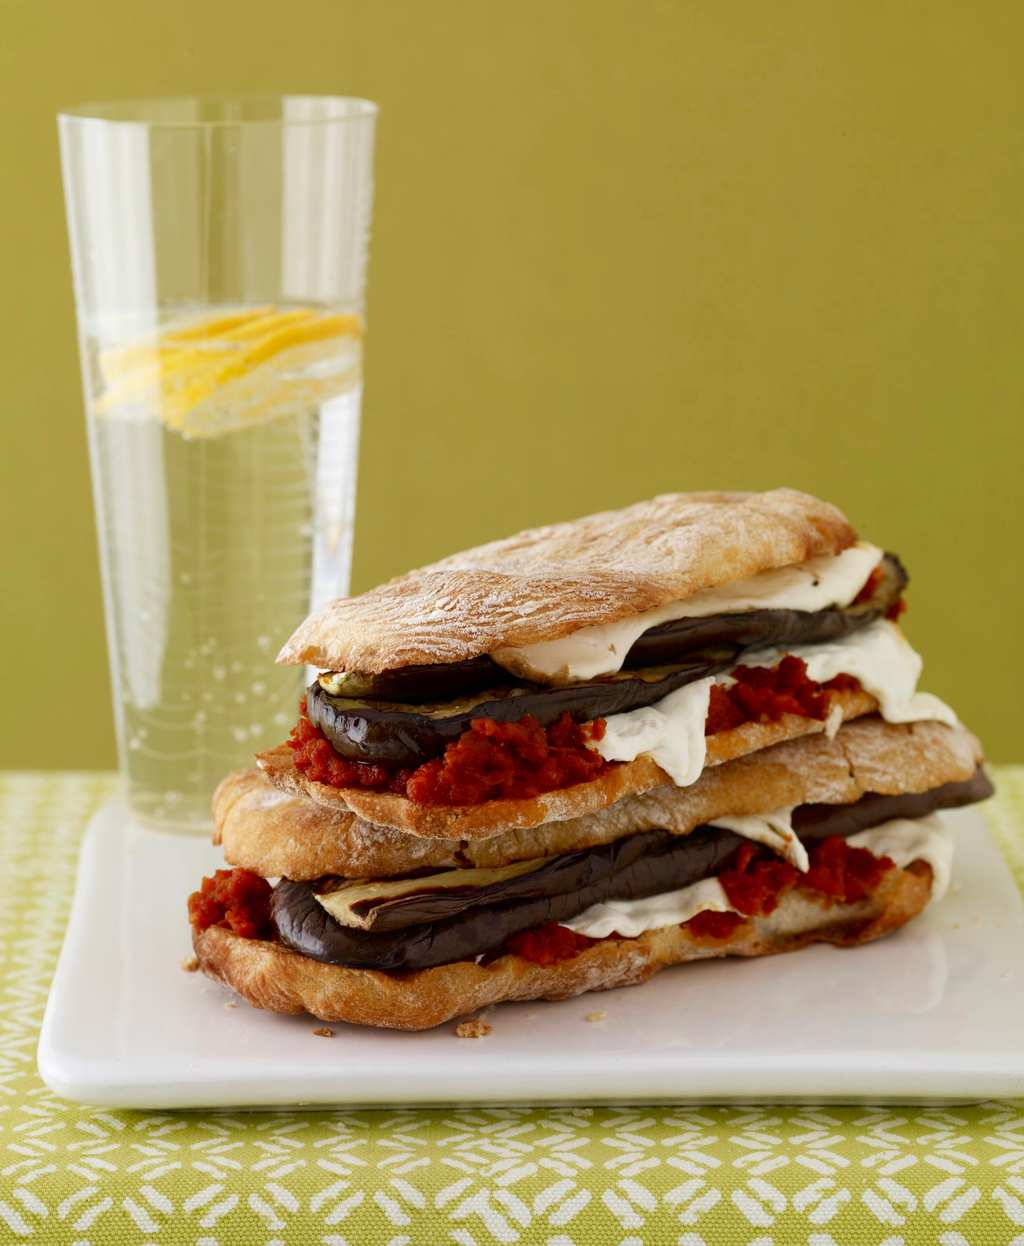 Mozzarella and eggplant panini on plate with water